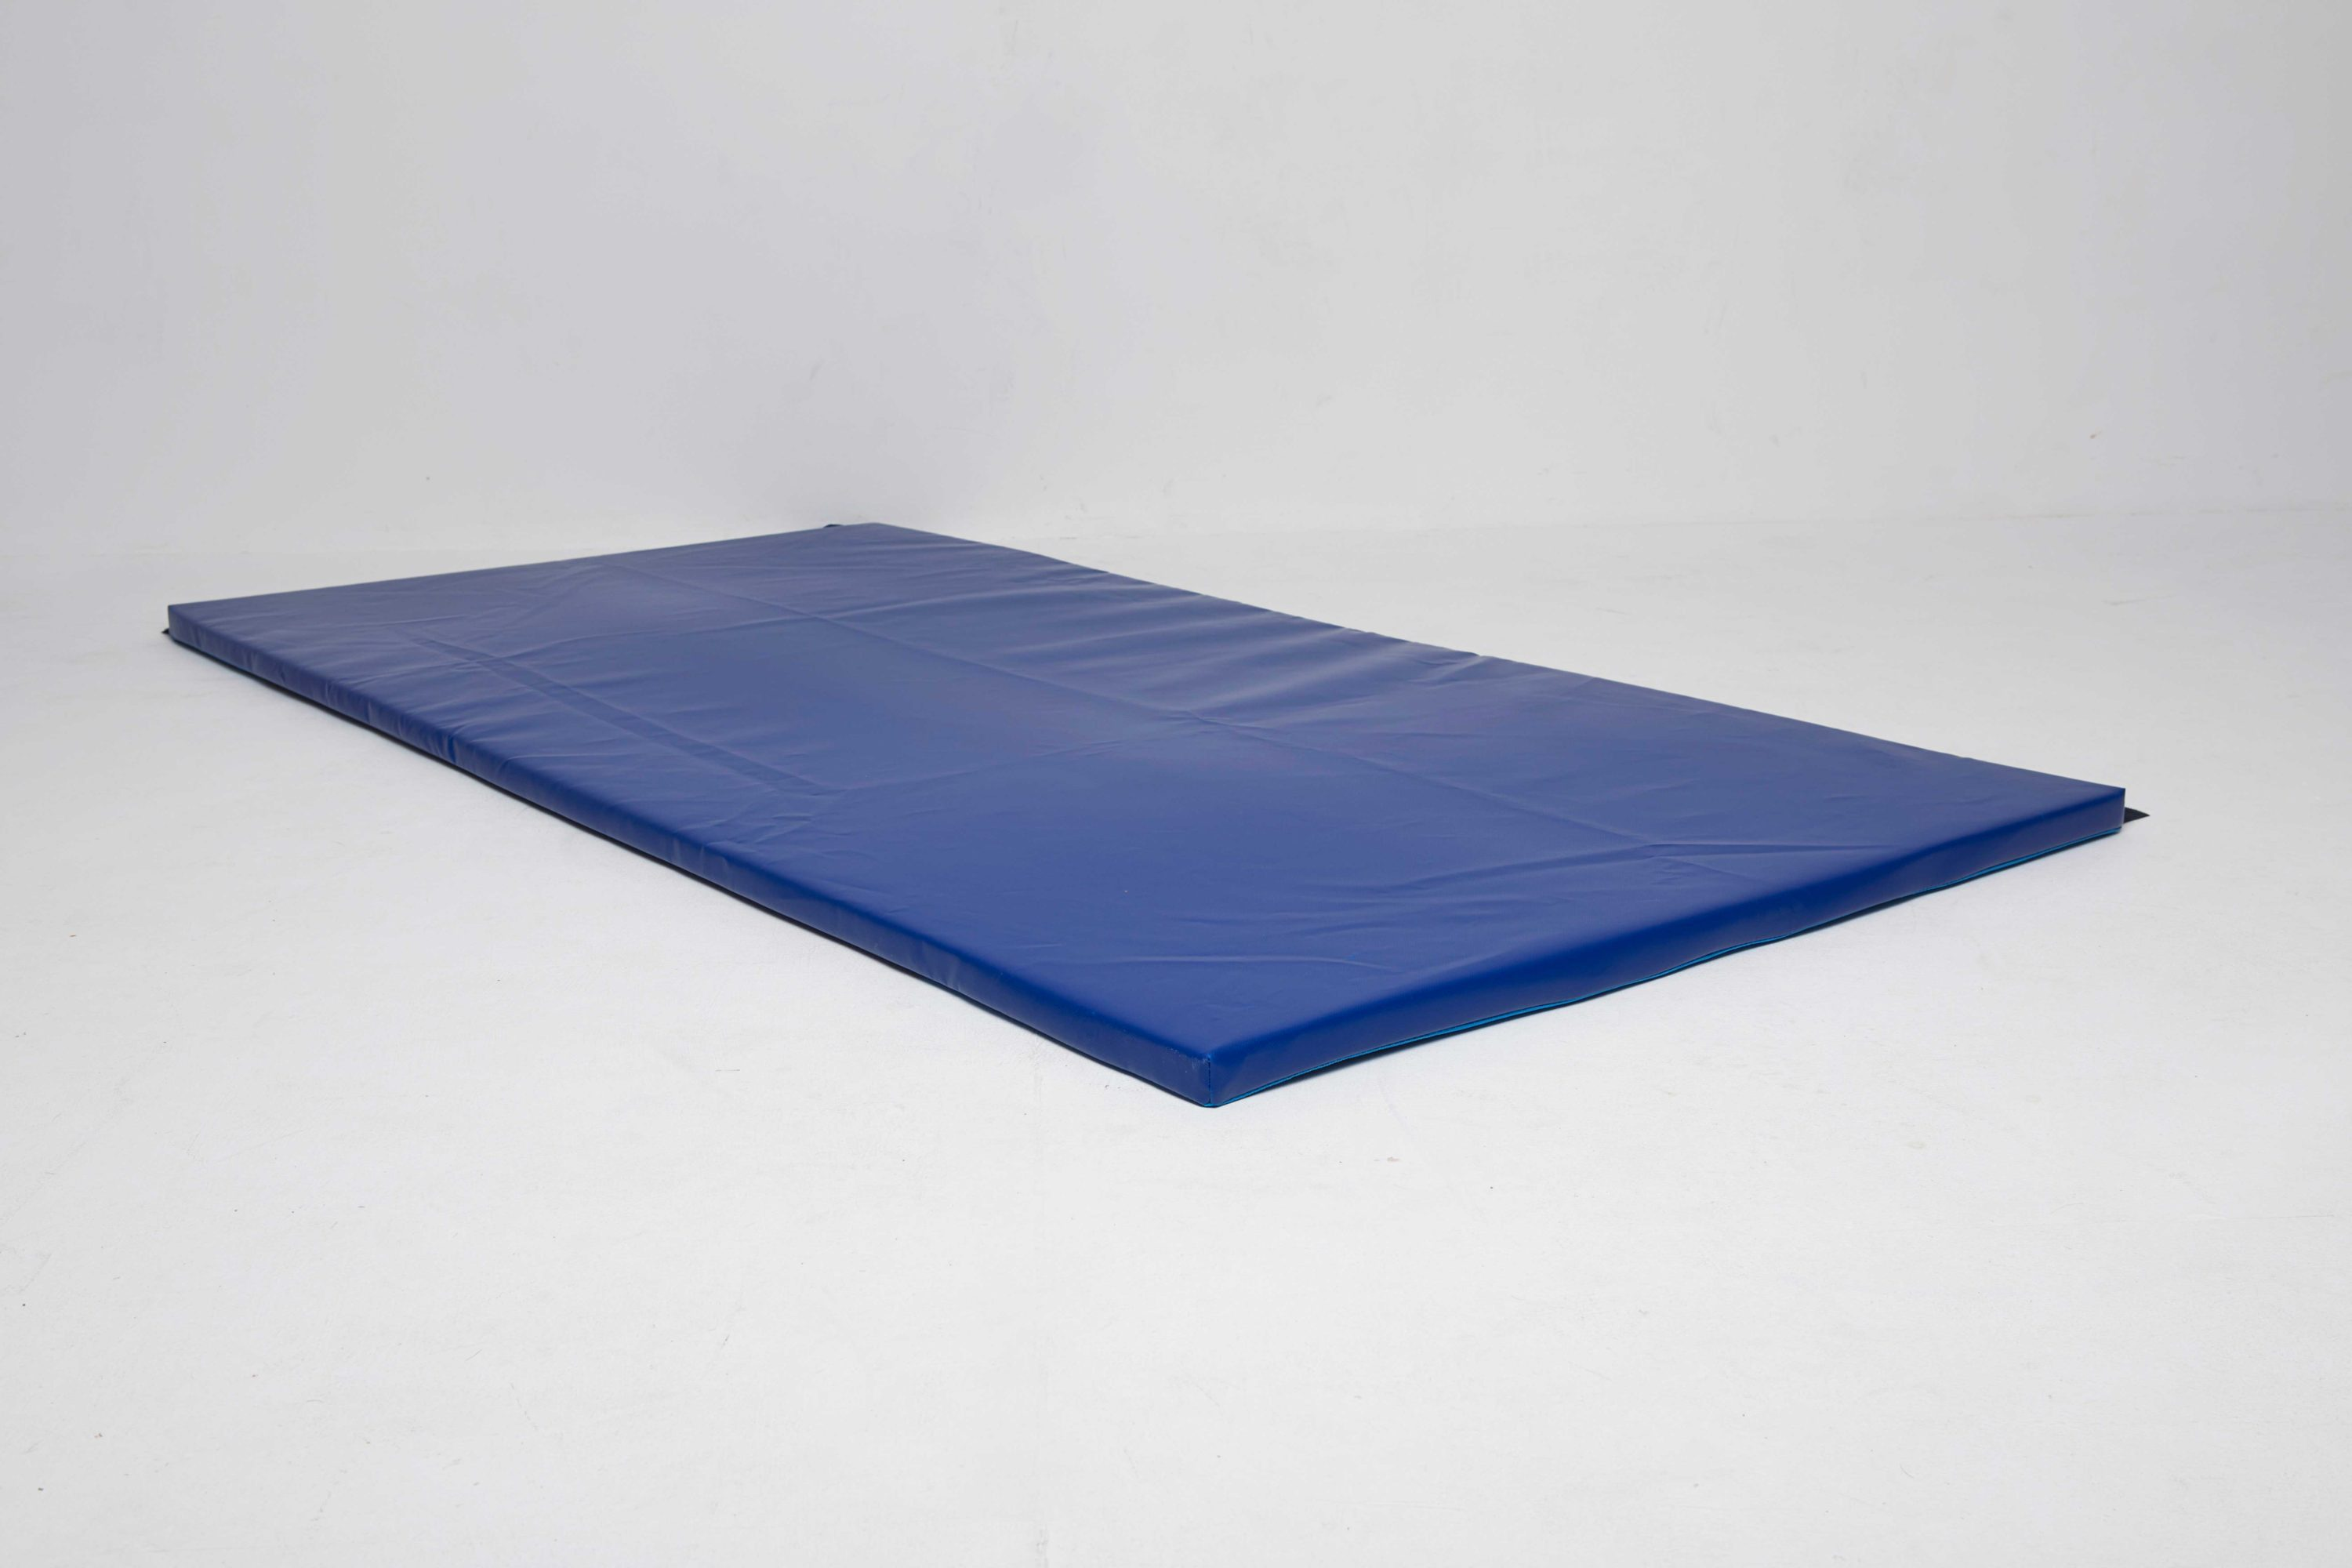 plufsig folding us gymnastic mats ikea mat catalog products gym en